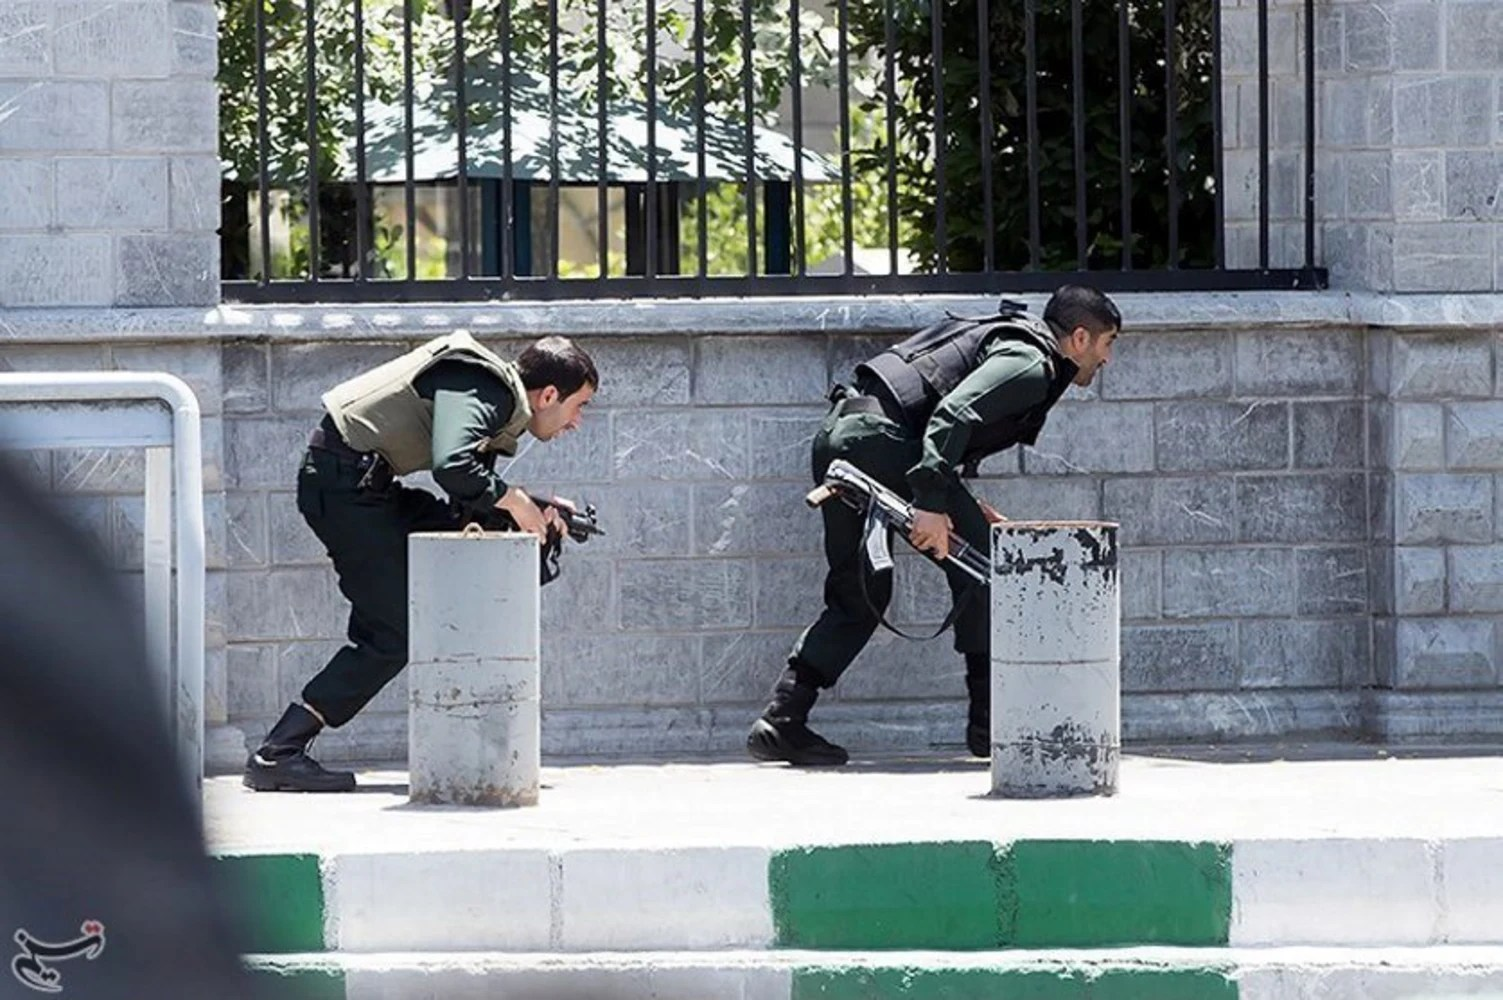 Iran: 5 Tehran Terrorists Had Fought for Islamic State